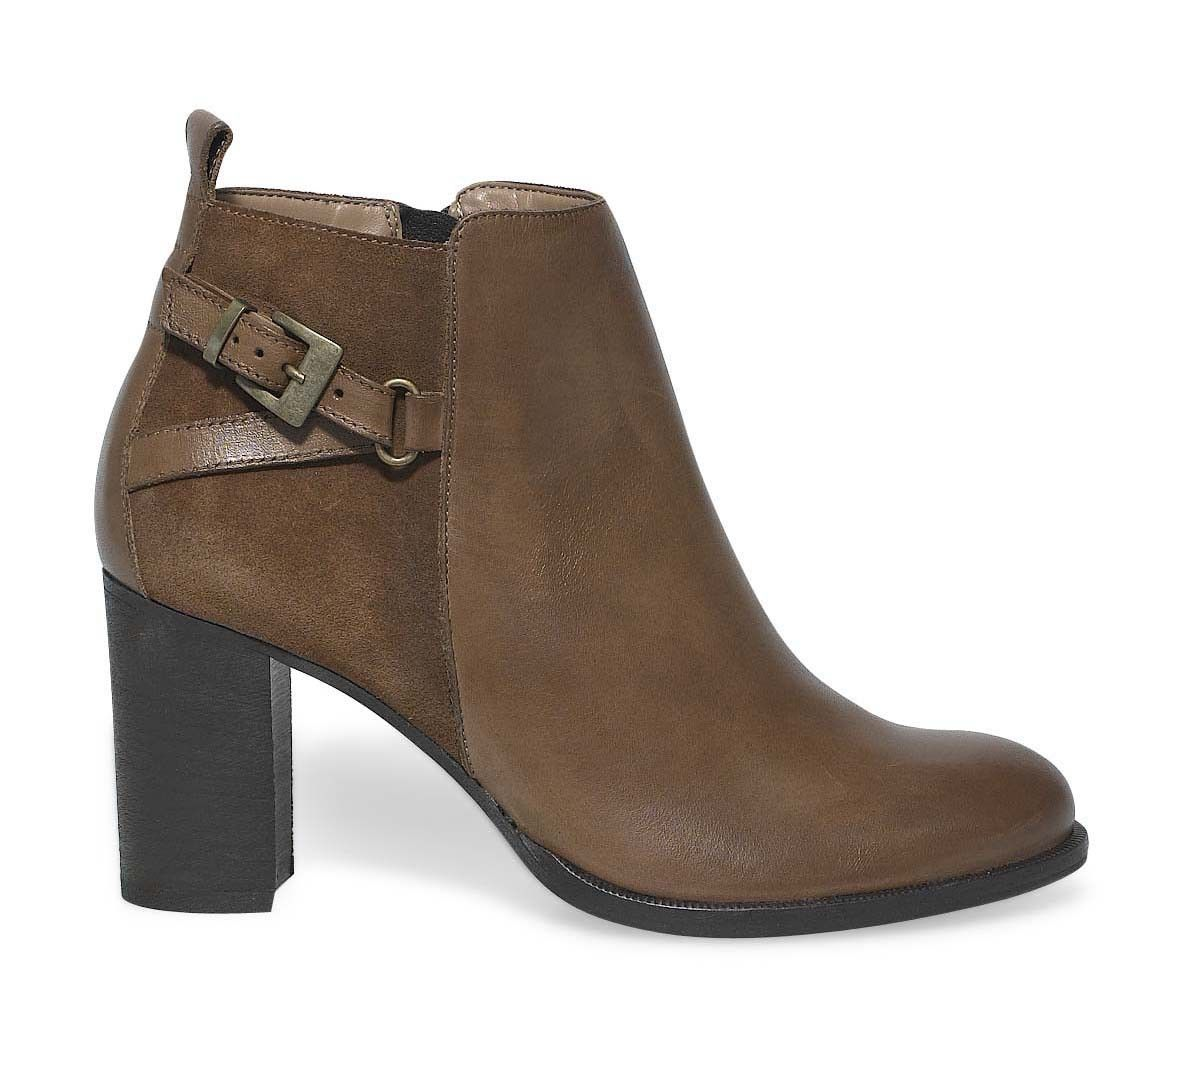 boots talon camel - boots / bottines - femme | chaussures